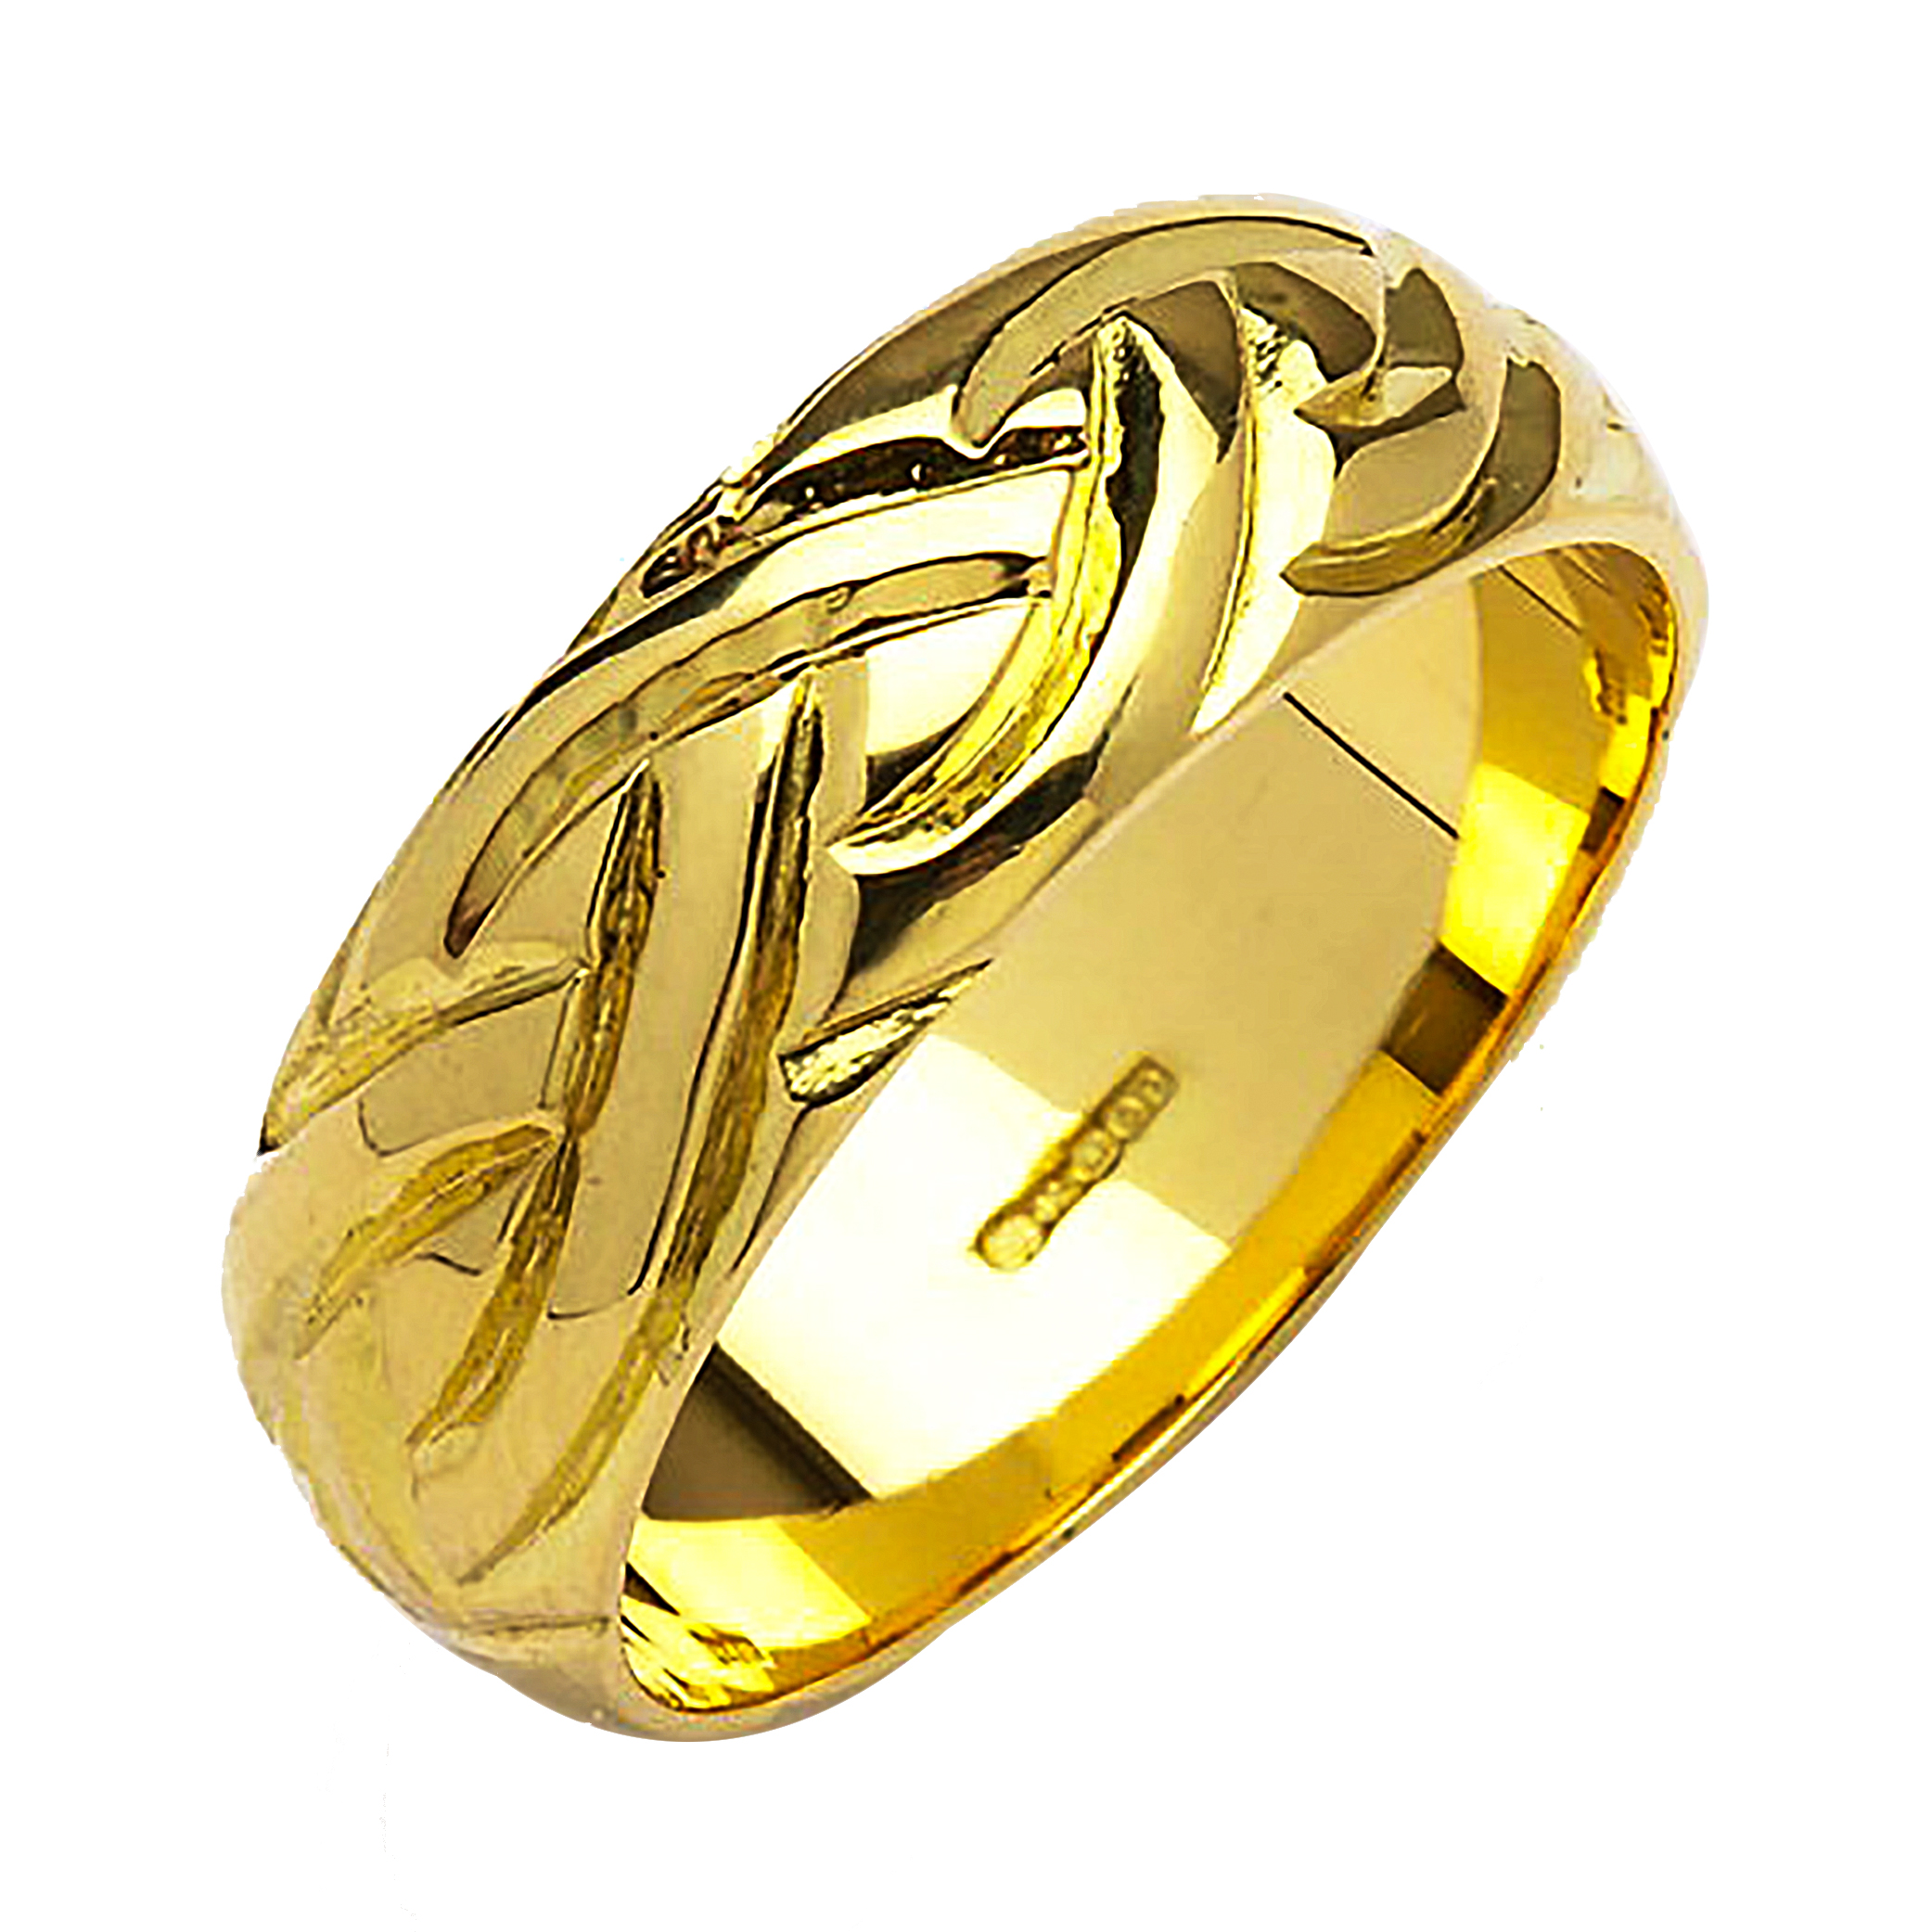 It is just a photo of Irish Gold Wedding Ring - Livia - 42K Wide Dome